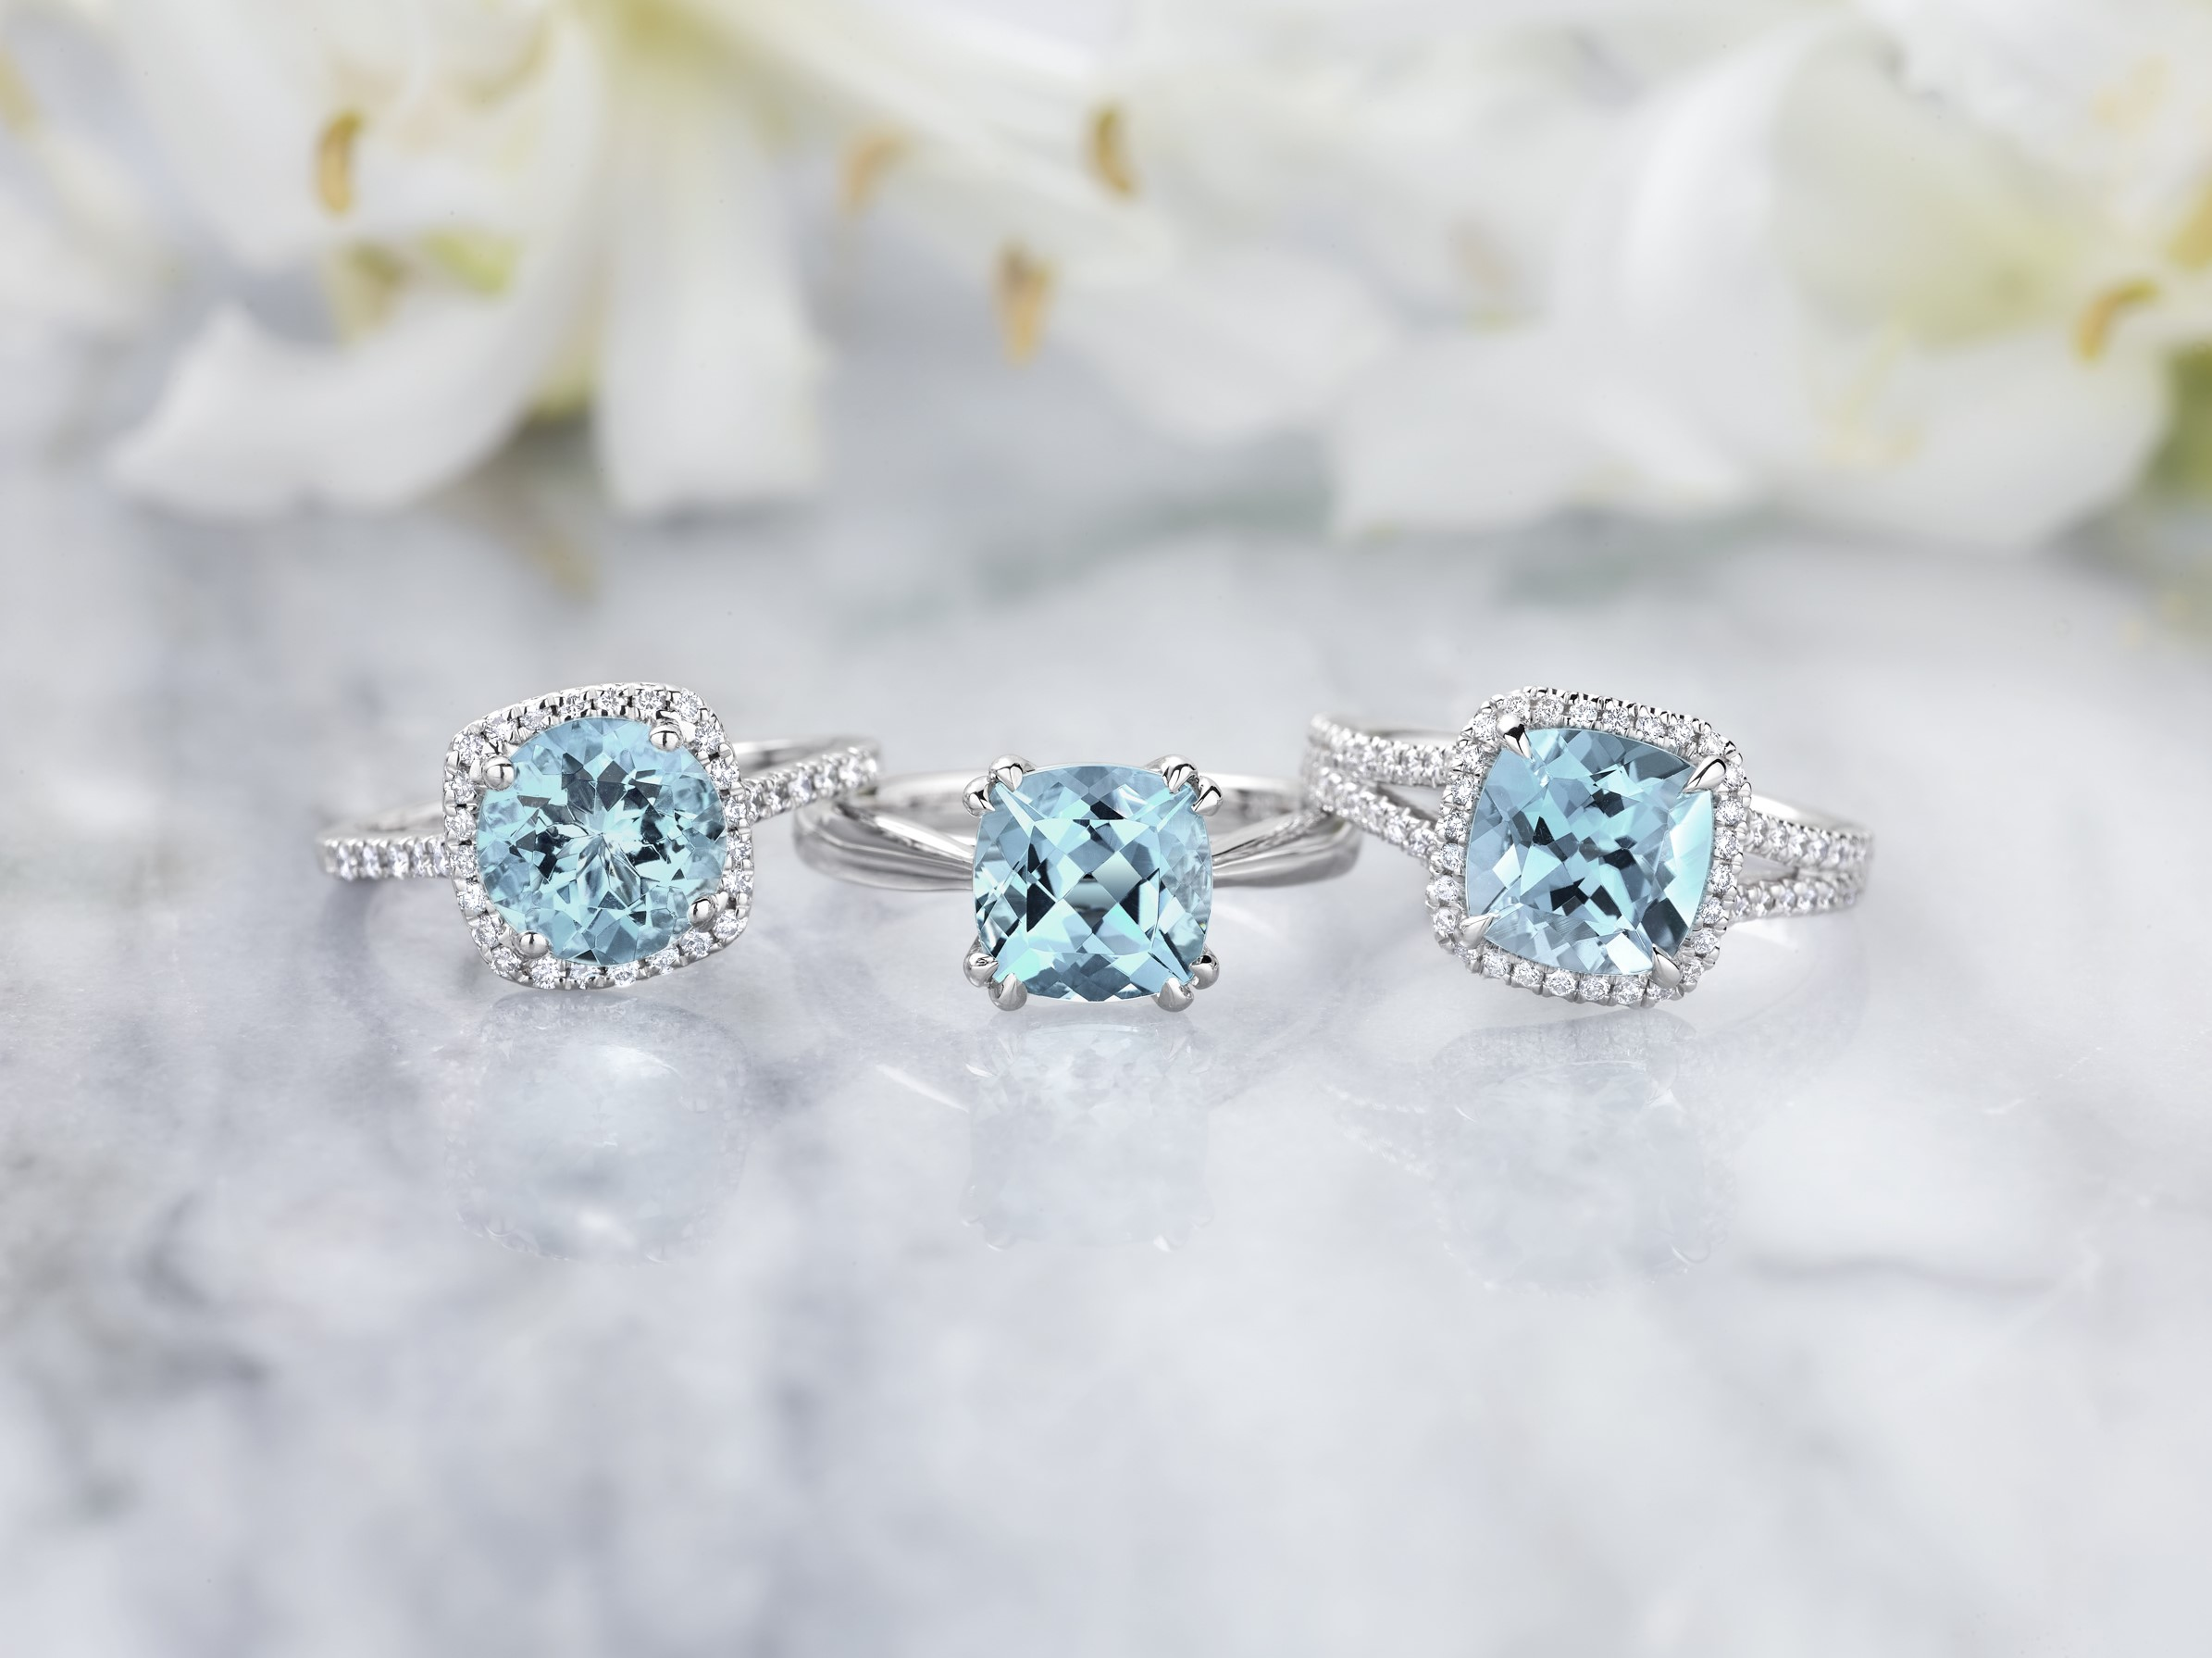 bridal engagement set diamond available white round floral aqua in pebble gold natural aquamarine rings media ring